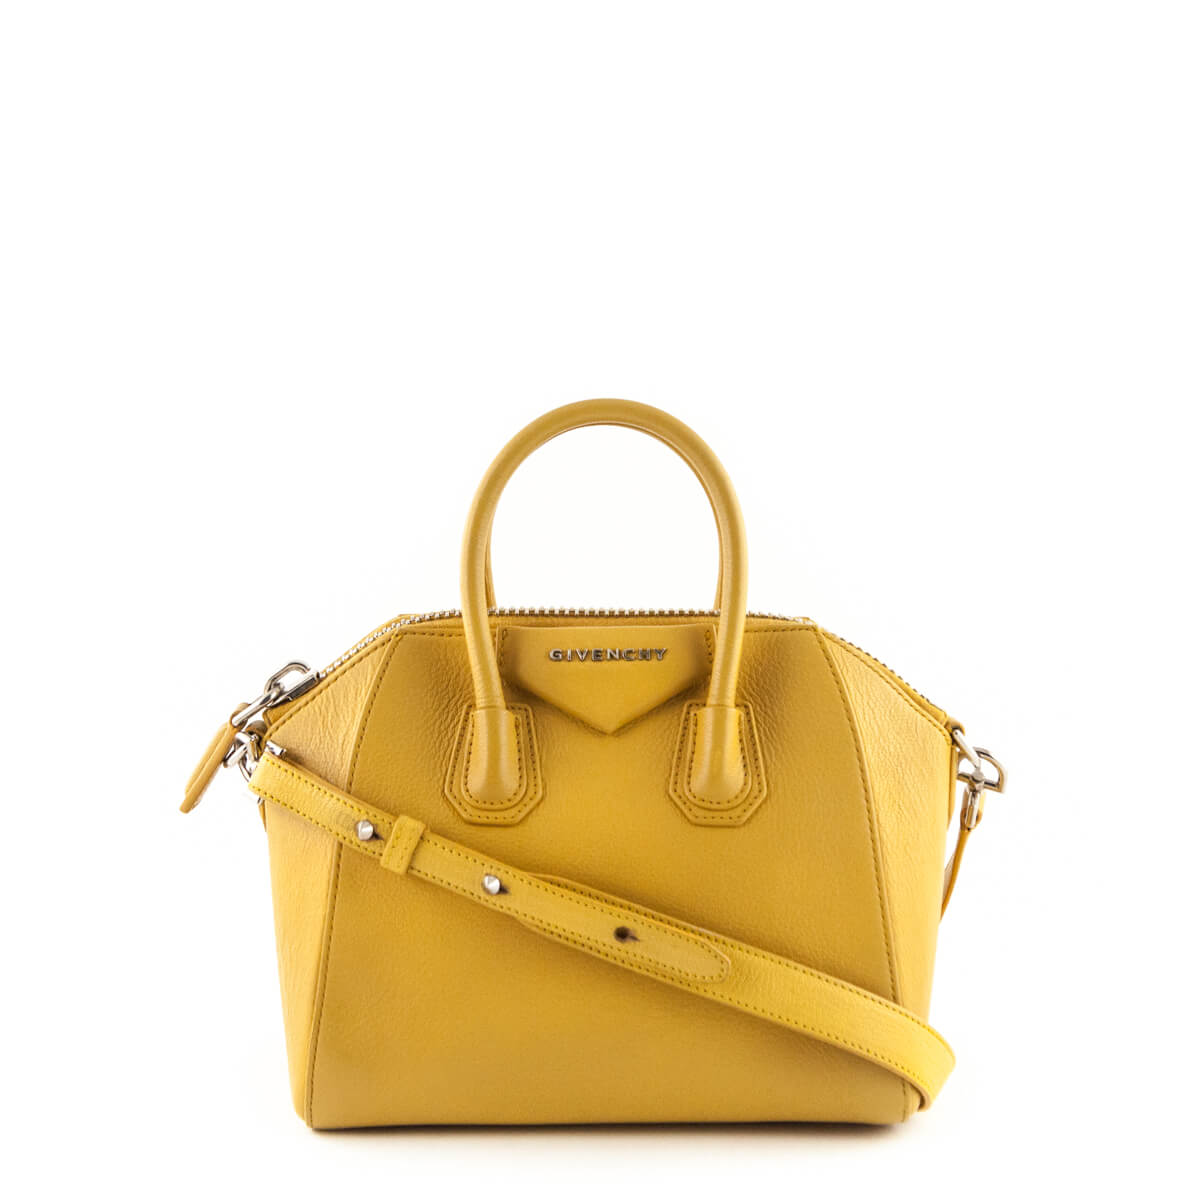 c2feedf31db8 Givenchy Mustard Goatskin Mini Antigona - LOVE that BAG - Preowned  Authentic Designer Handbags ...